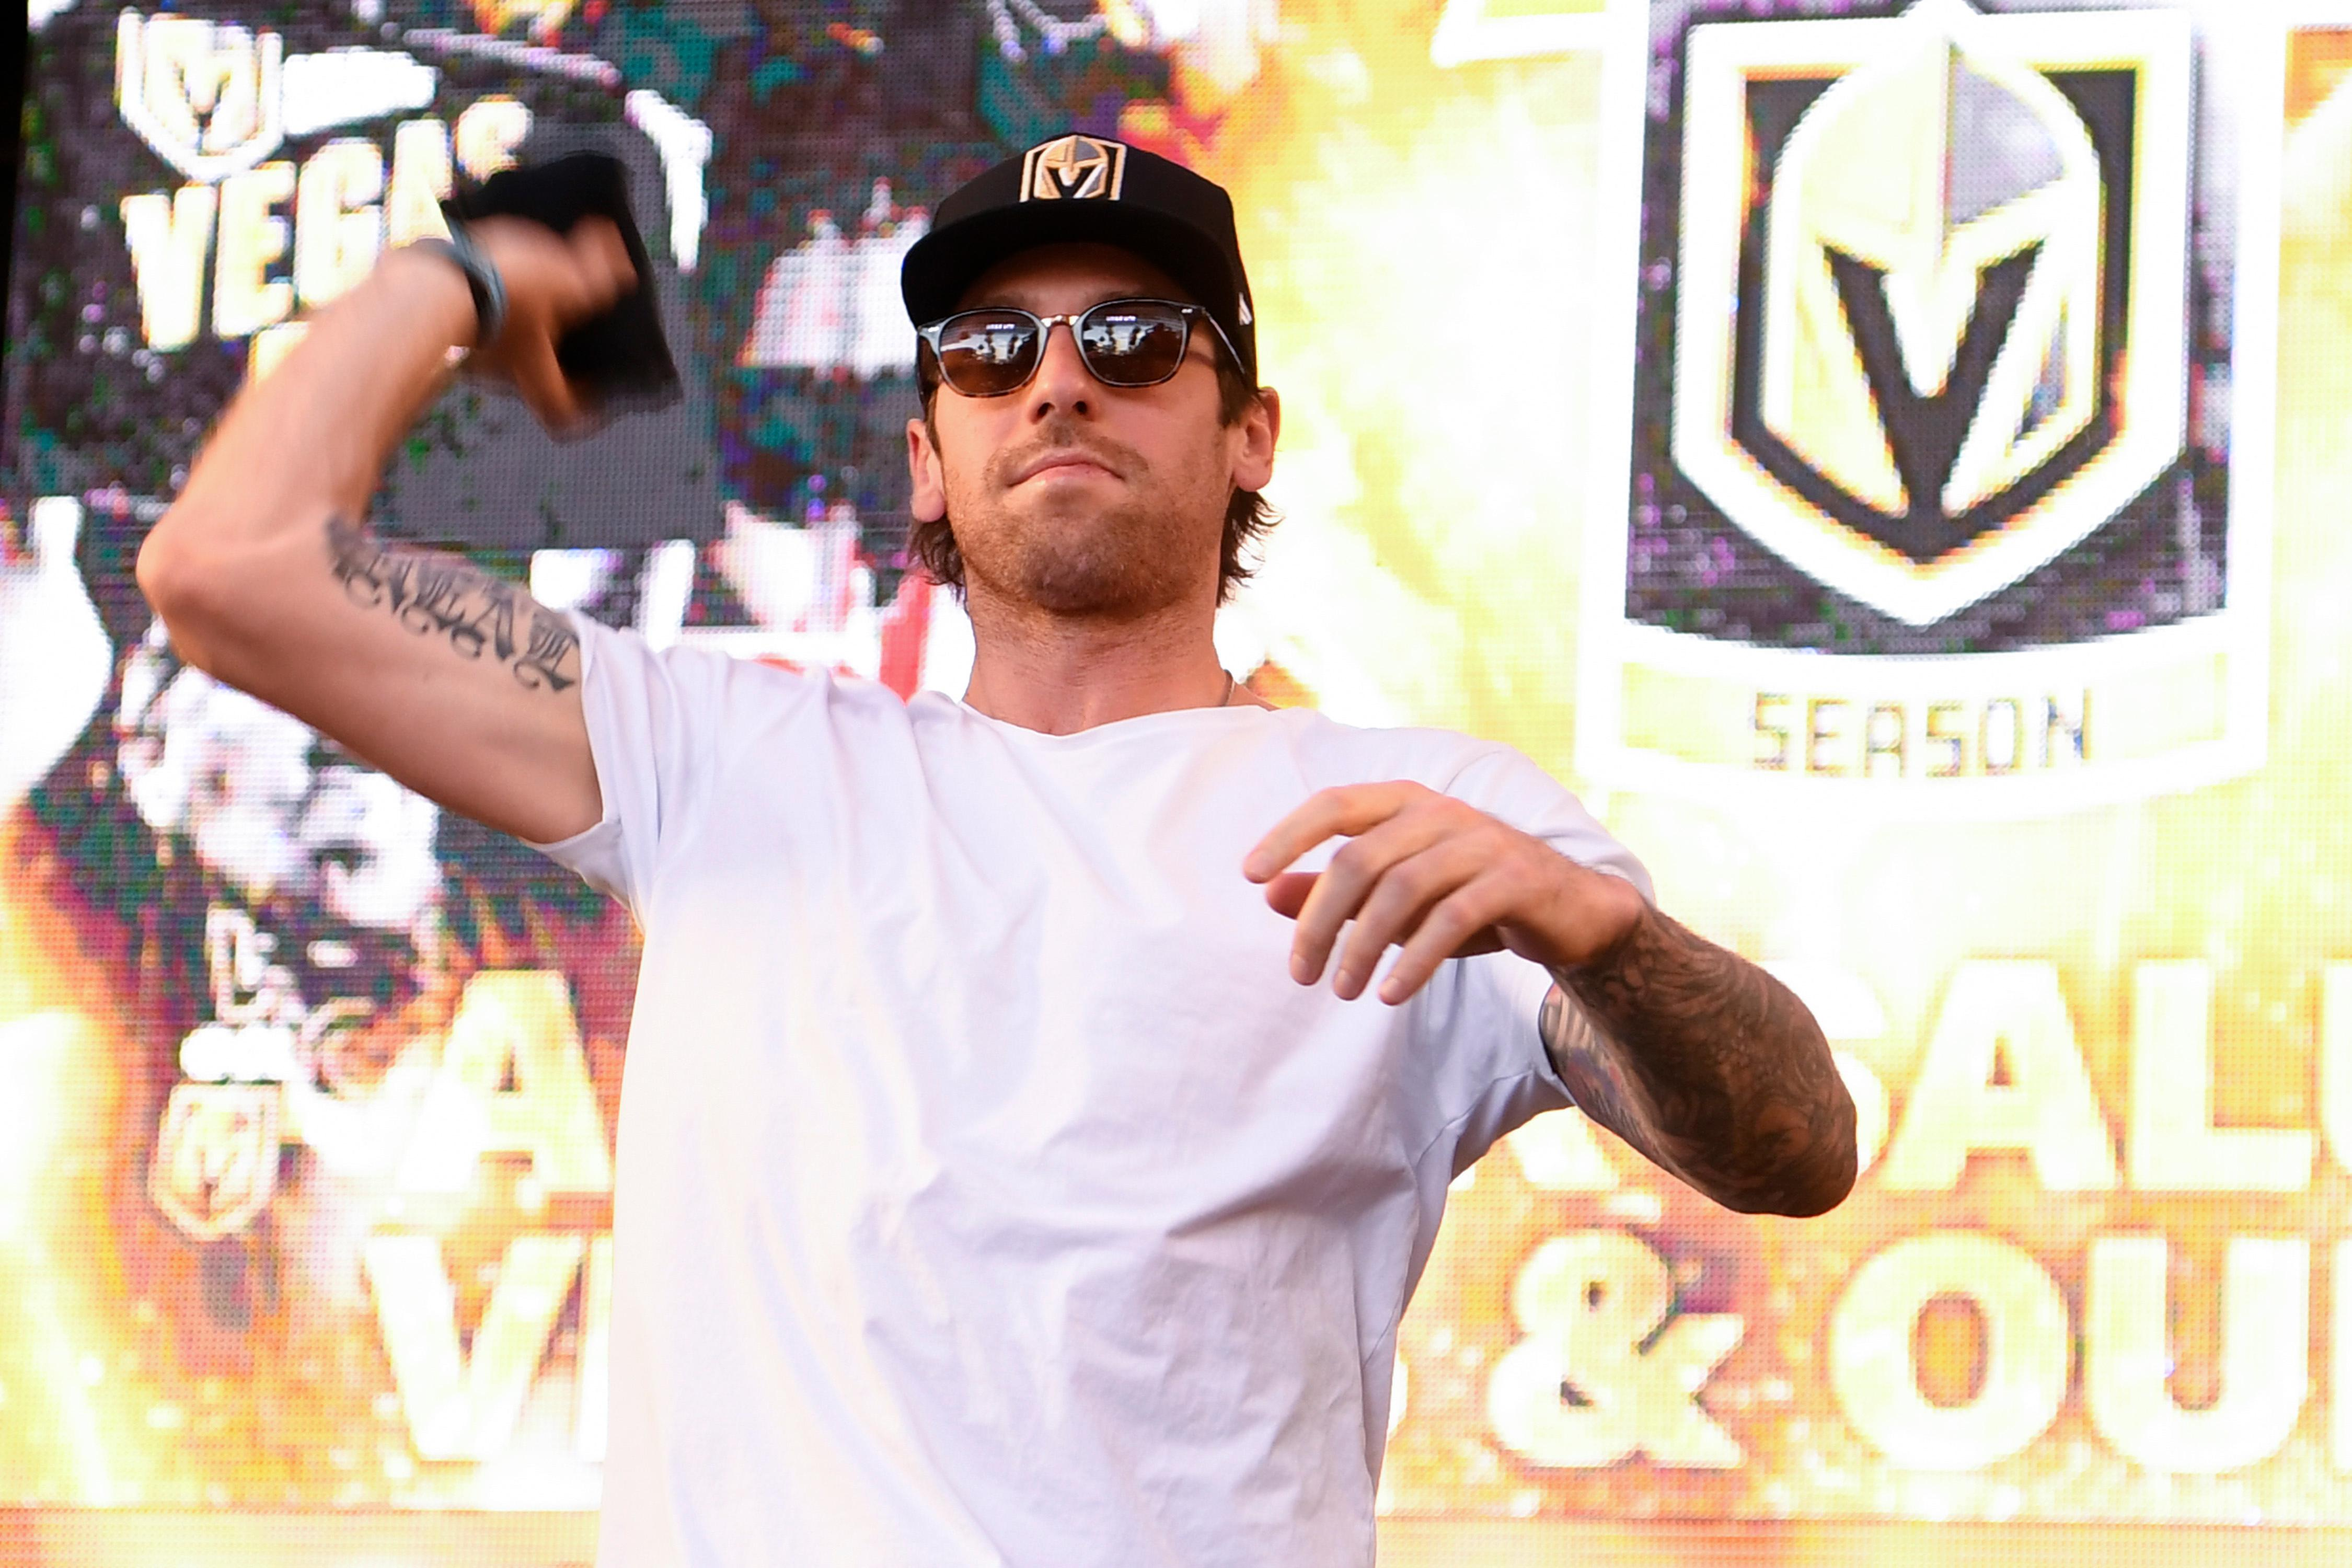 Vegas Golden Knights left wing James Neal tosses out a t-shirt during a Vegas Golden Knights Stick Salute to Vegas fan appreciation rally at the Fremont Street Experience Wednesday, June 13, 2018. CREDIT: Sam Morris/Las Vegas News Bureau